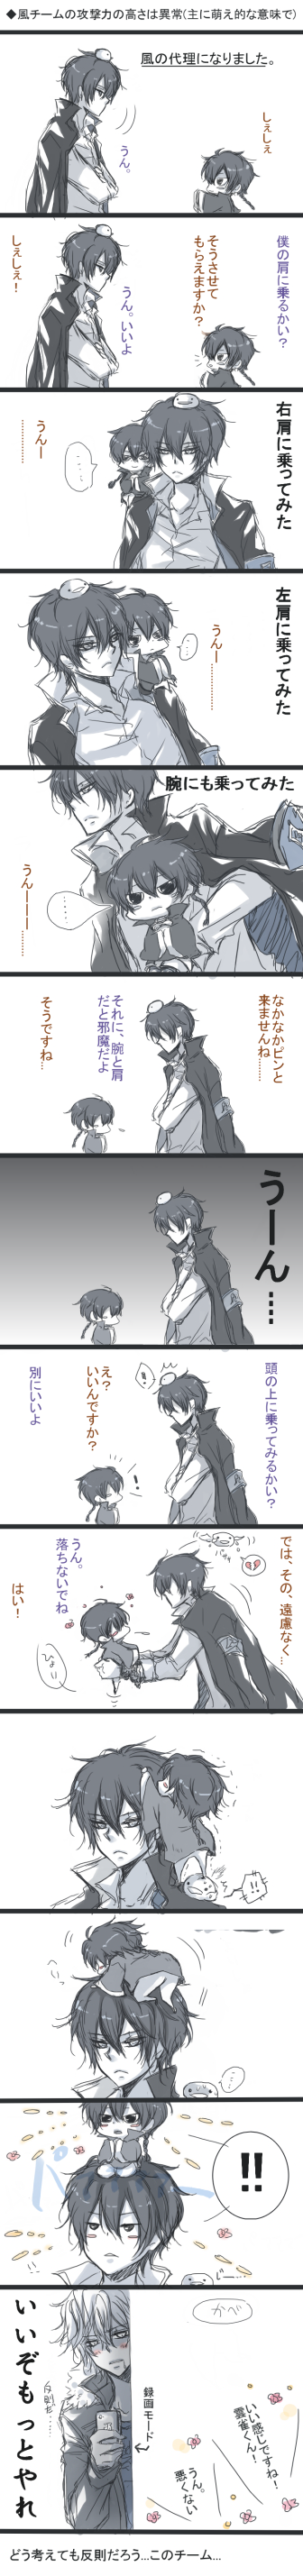 Tags: Anime, Lisa (Snhs), Katekyo Hitman REBORN!, Dino Cavallone, Hibari Kyoya, Fon, Hibird, Broken Heart, Person On Head, Comic, Translated, Pixiv, PNG Conversion